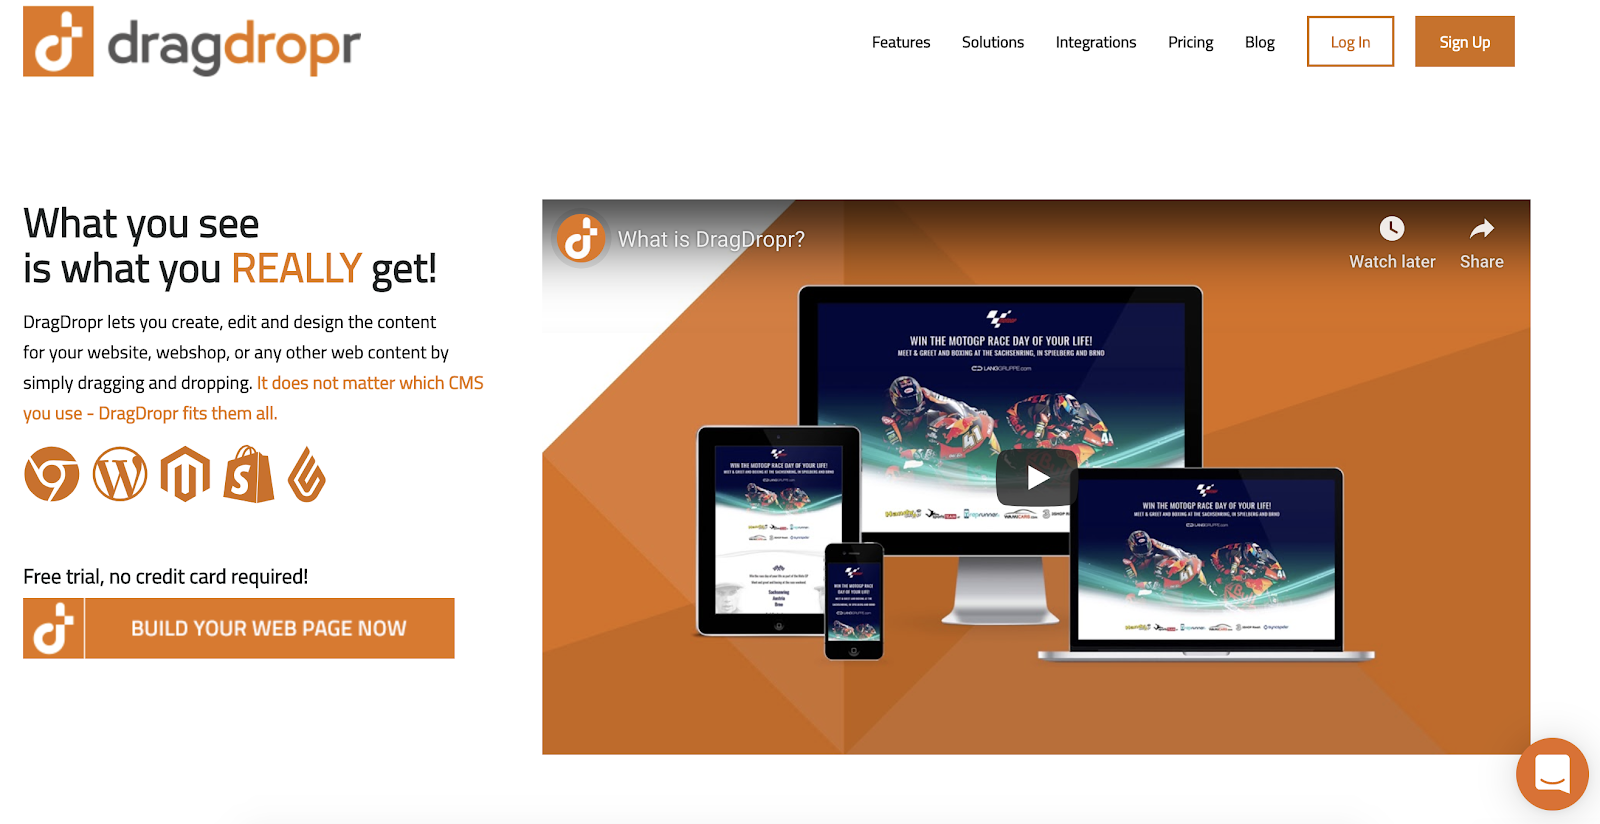 product page for the WordPress plugin dragdropr